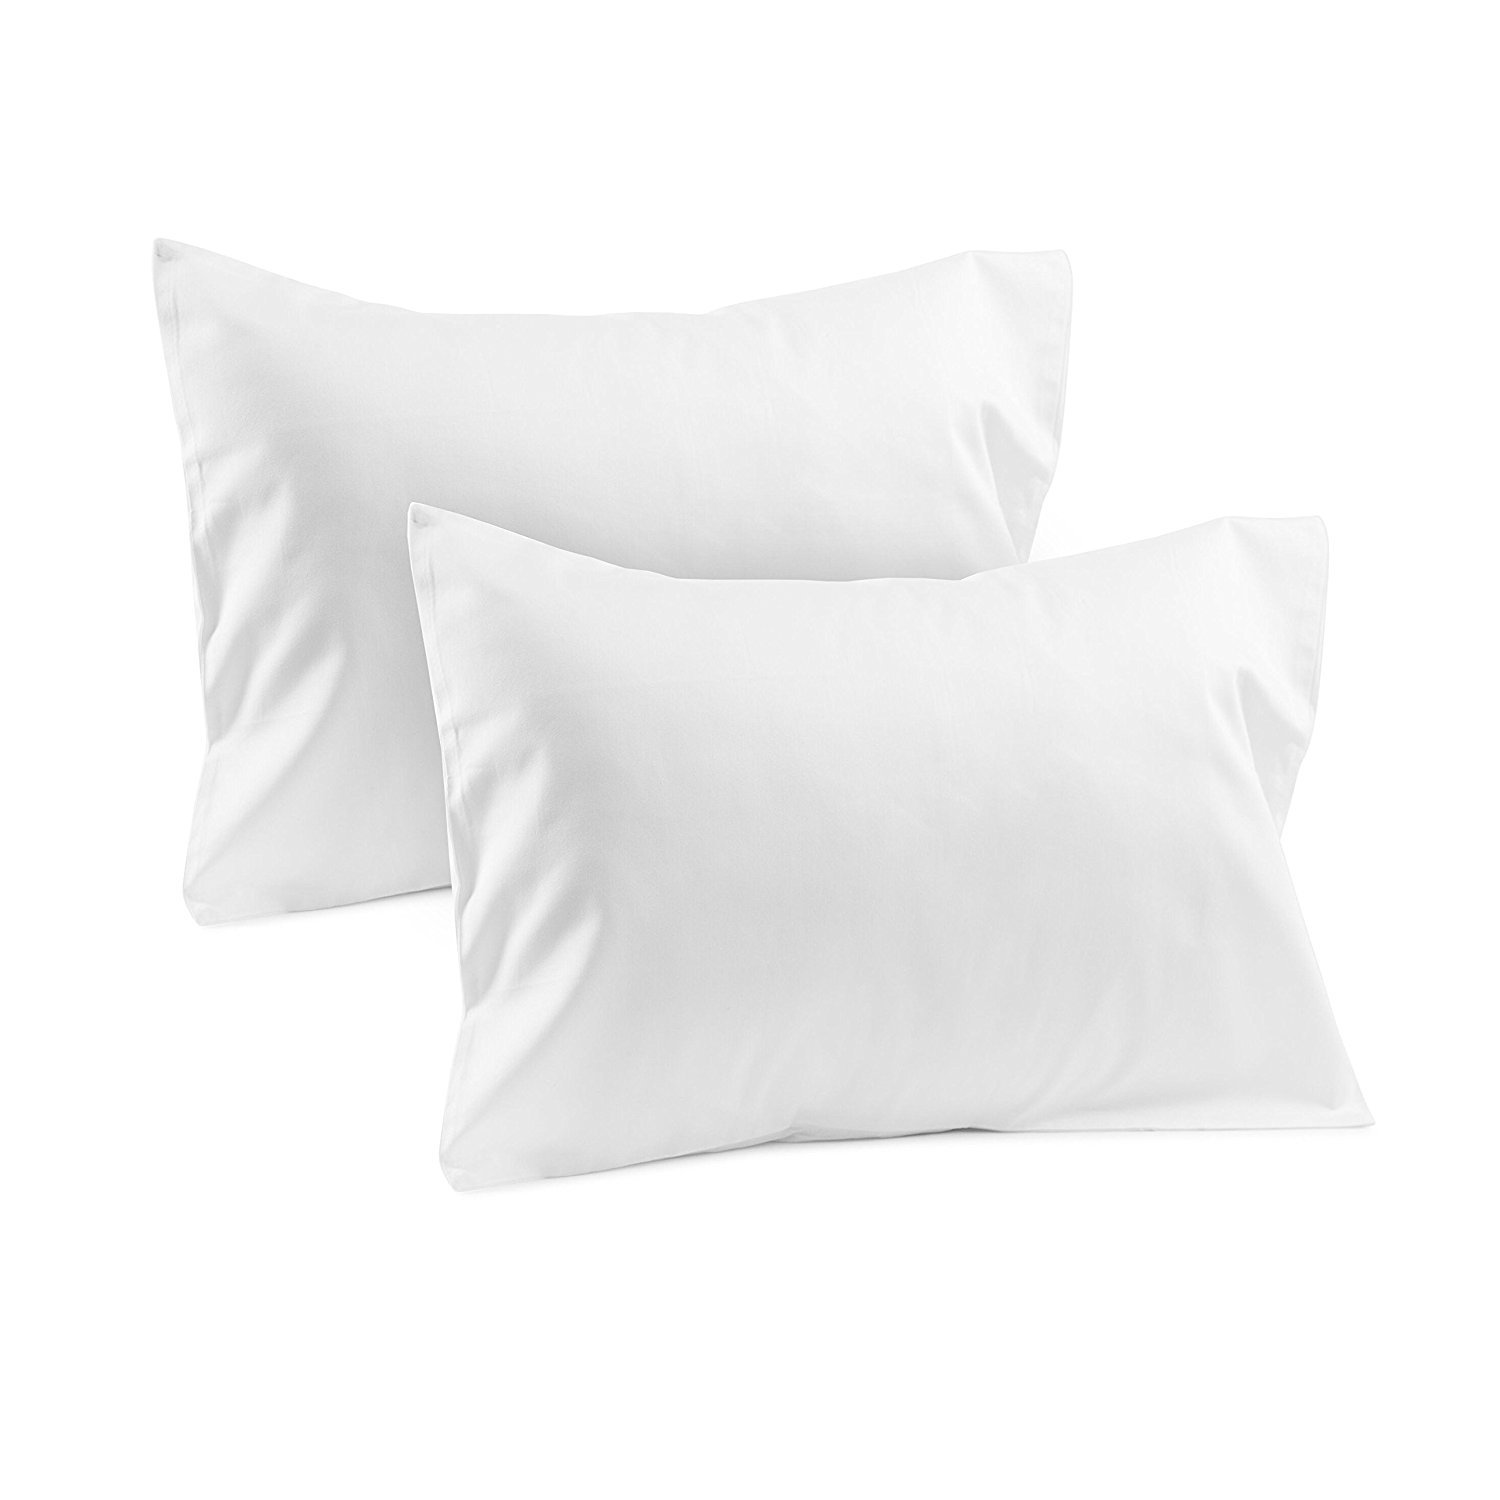 Set of 2 - Toddler Travel Pillowcase 700 Thread Count 14''x20'' Size with 100% Egyptian Cotton